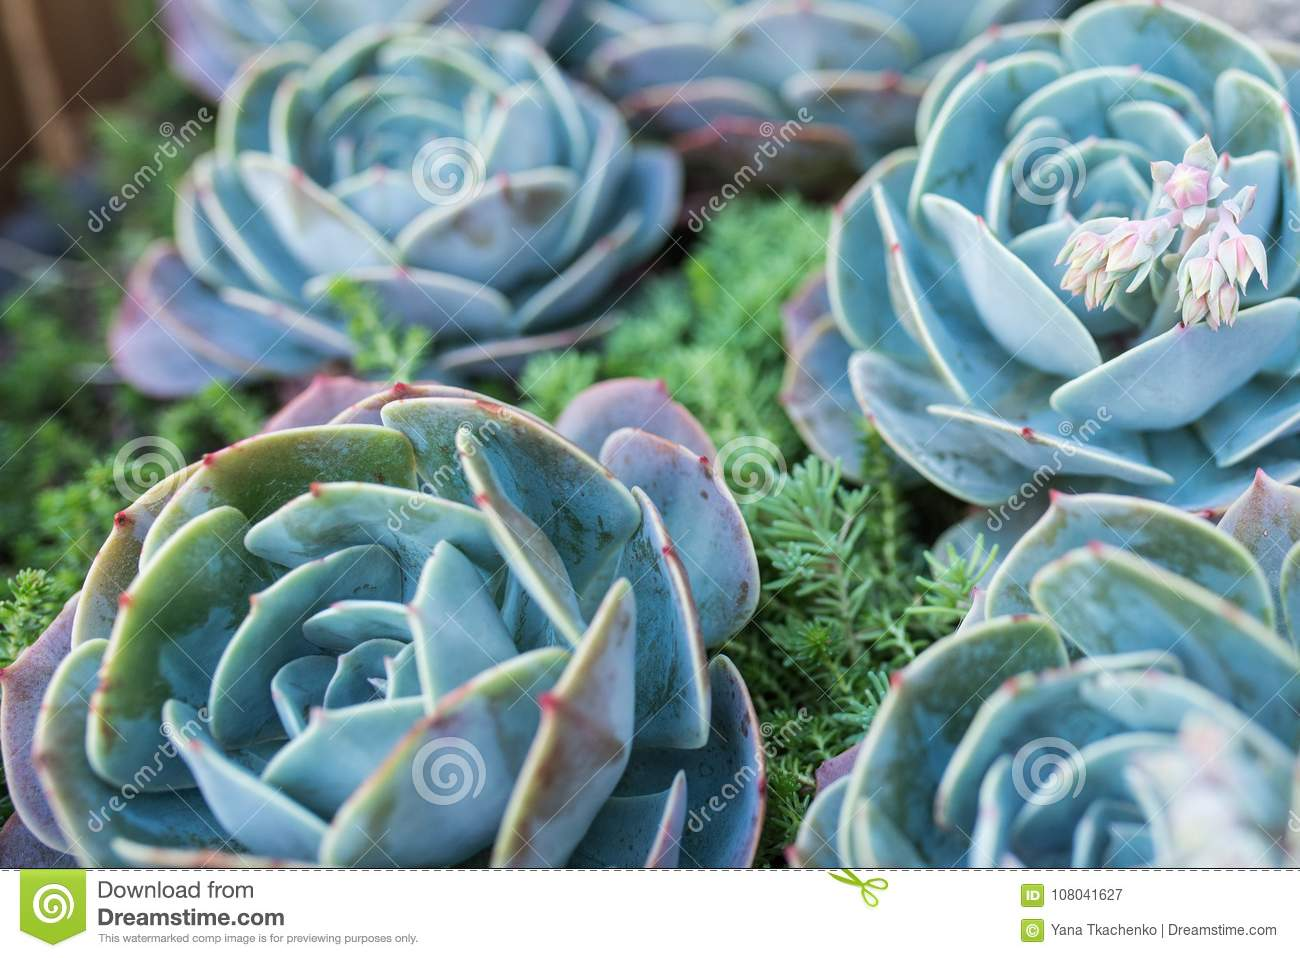 Photo Of Green And Blue Succulent Some Succulents Out Of Focus Stock Image Image Of Succulent Bloom 108041627